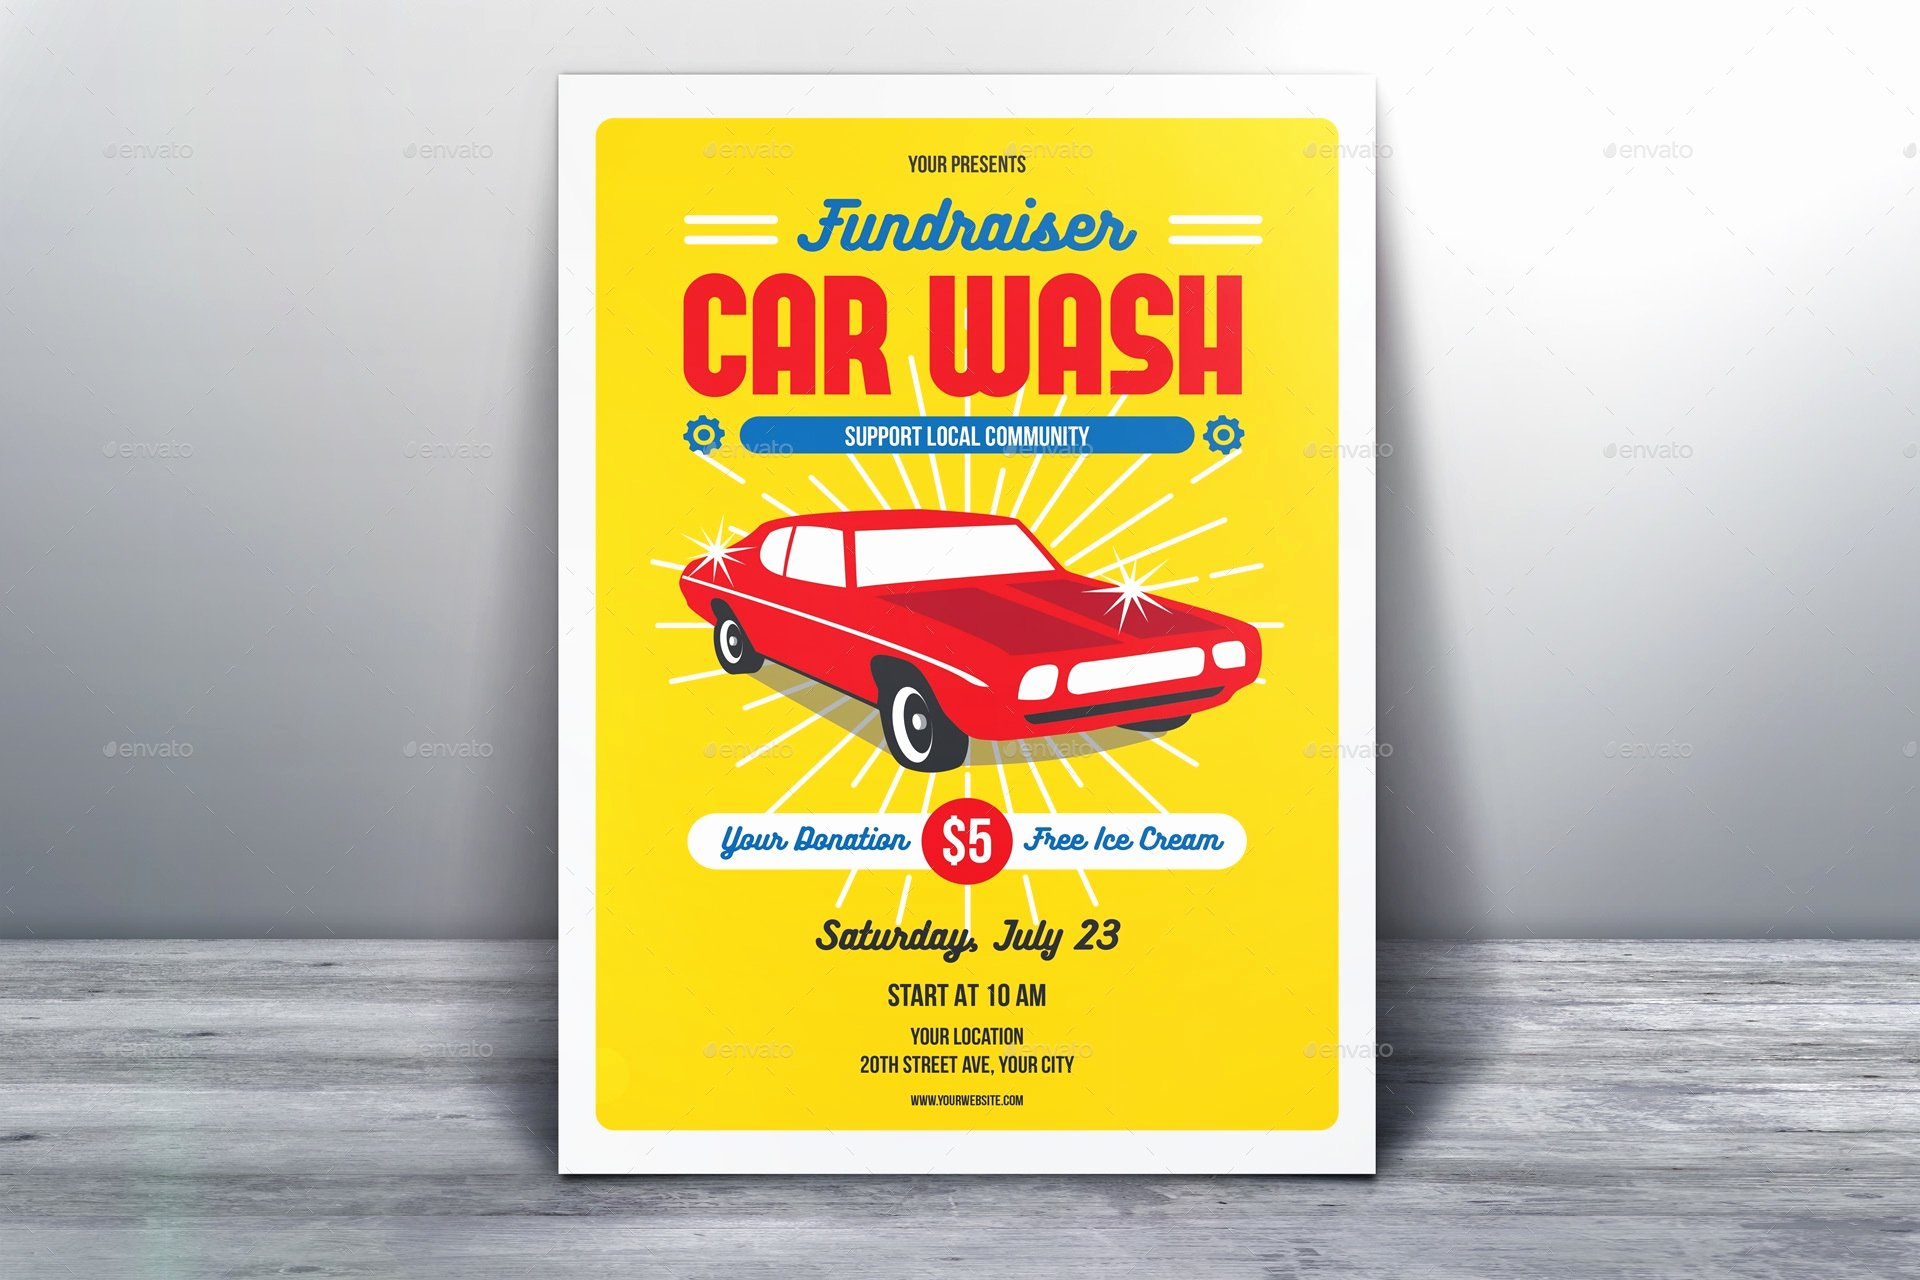 Car Wash Fundraiser Flyers Awesome 39 Elegant Fundraising Flyer Templates Word Psd Ai